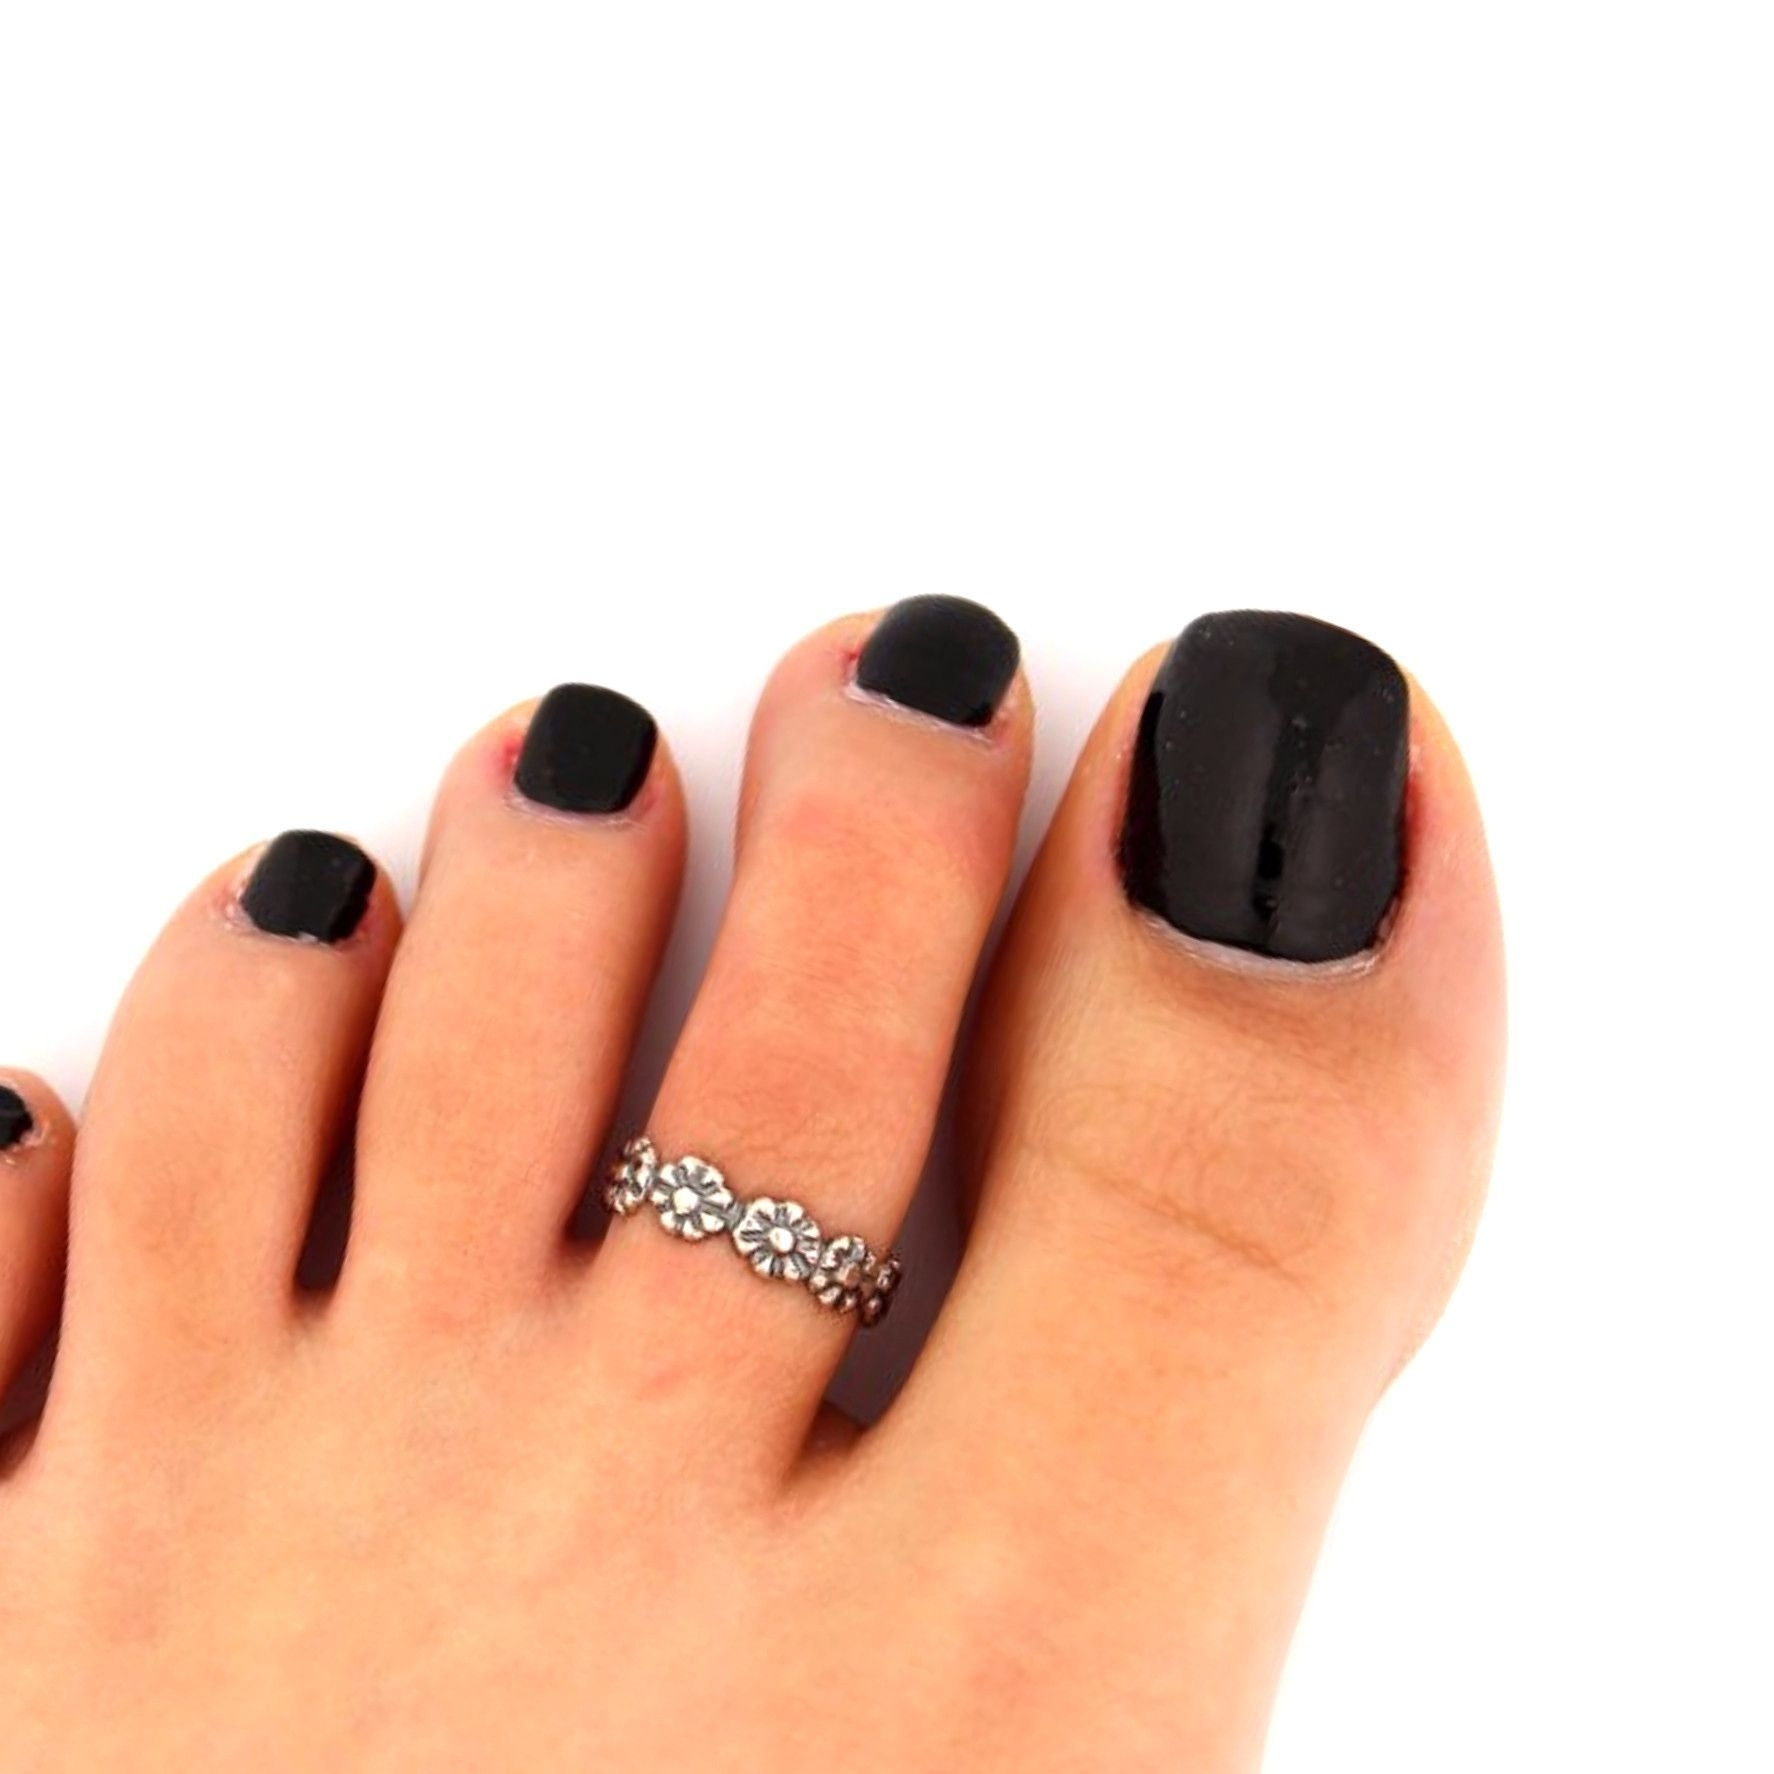 Shopping For Toe Rings That Are Simple Yet Chic? This Silver Toe Within Most Popular Personalized Toe Rings (View 12 of 15)